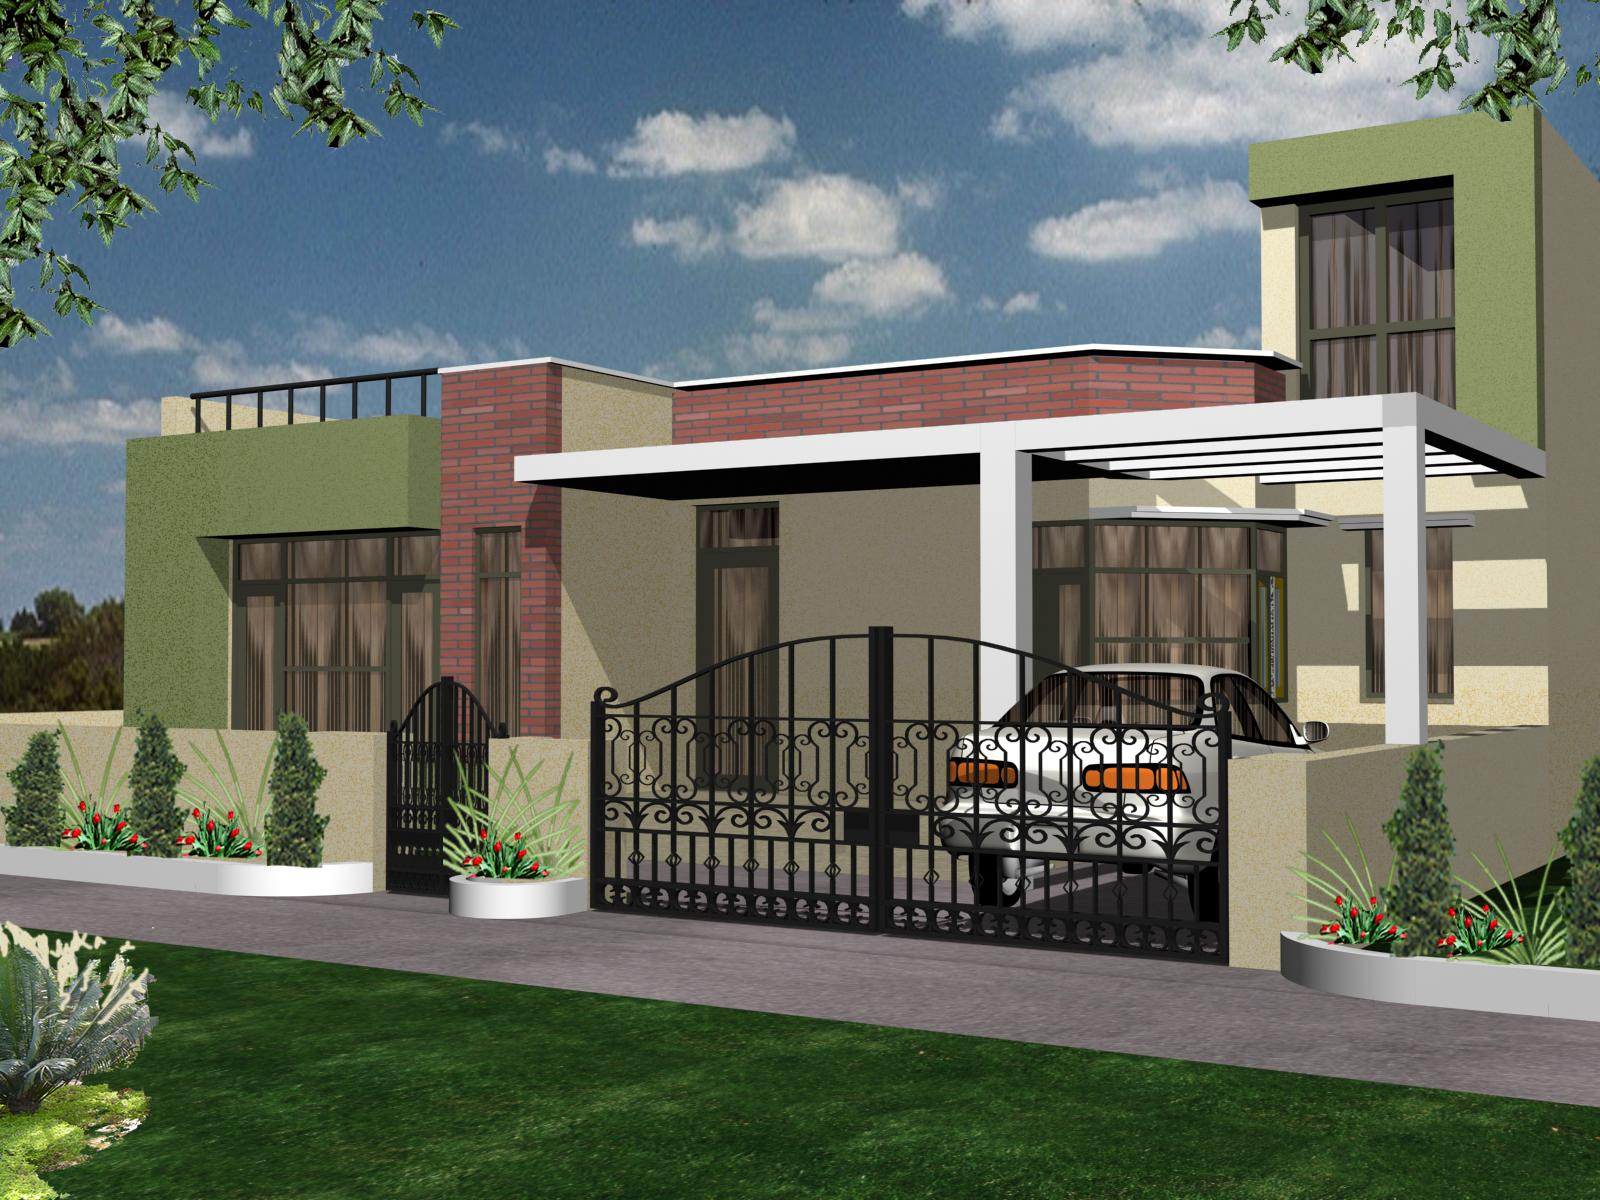 House exterior design gharexpert for Exterior design pictures